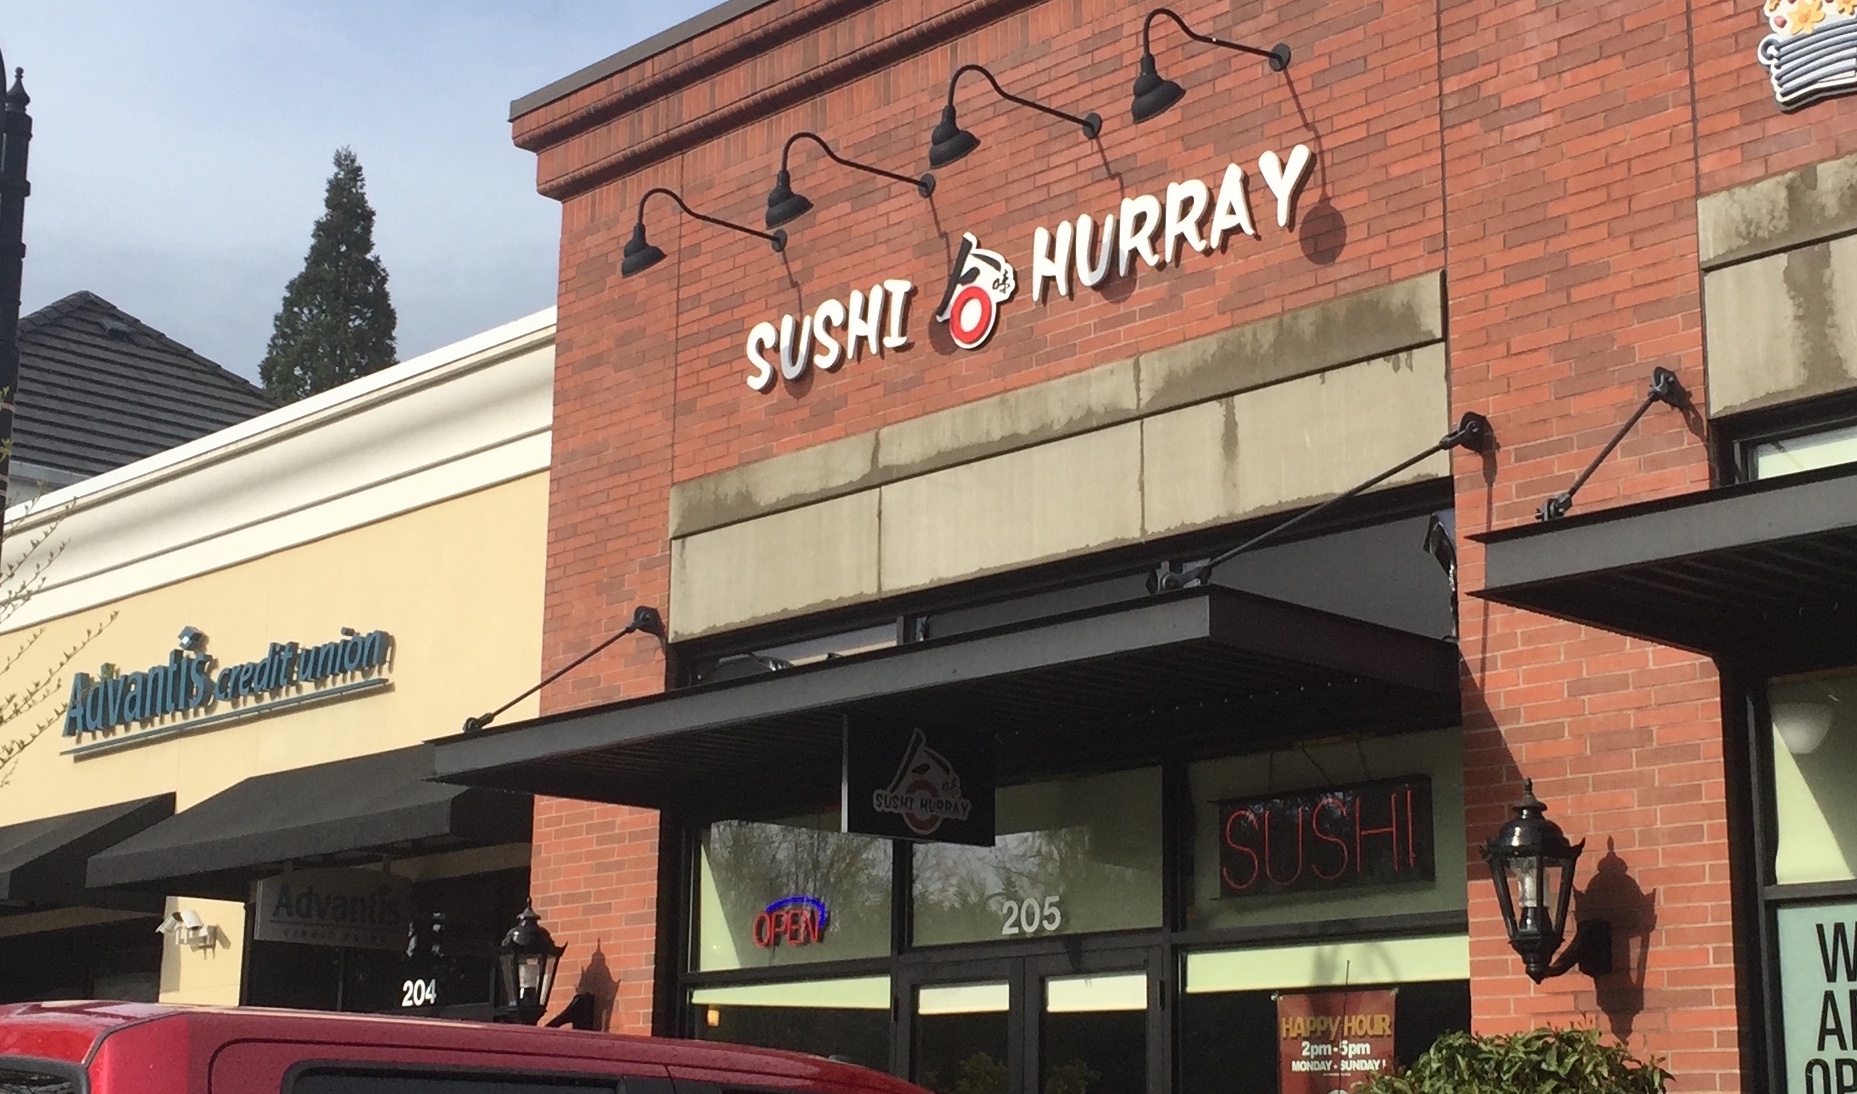 The newly renovated building that used to house Sushi Boat, now showing off a fresh new look.